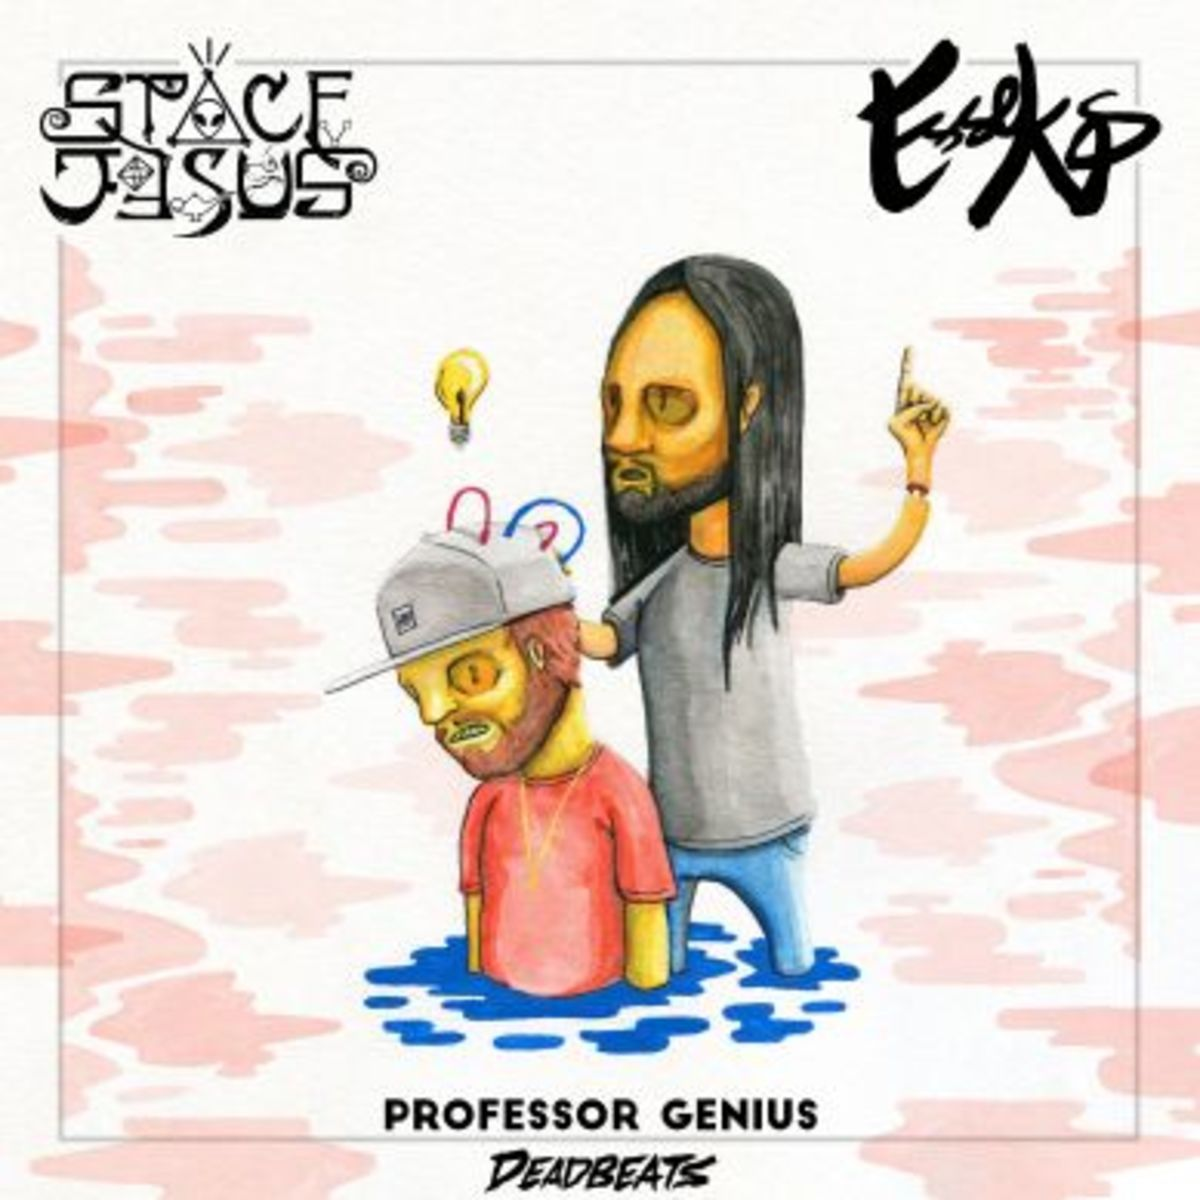 Space Jesus x Esseks - Professor Genius